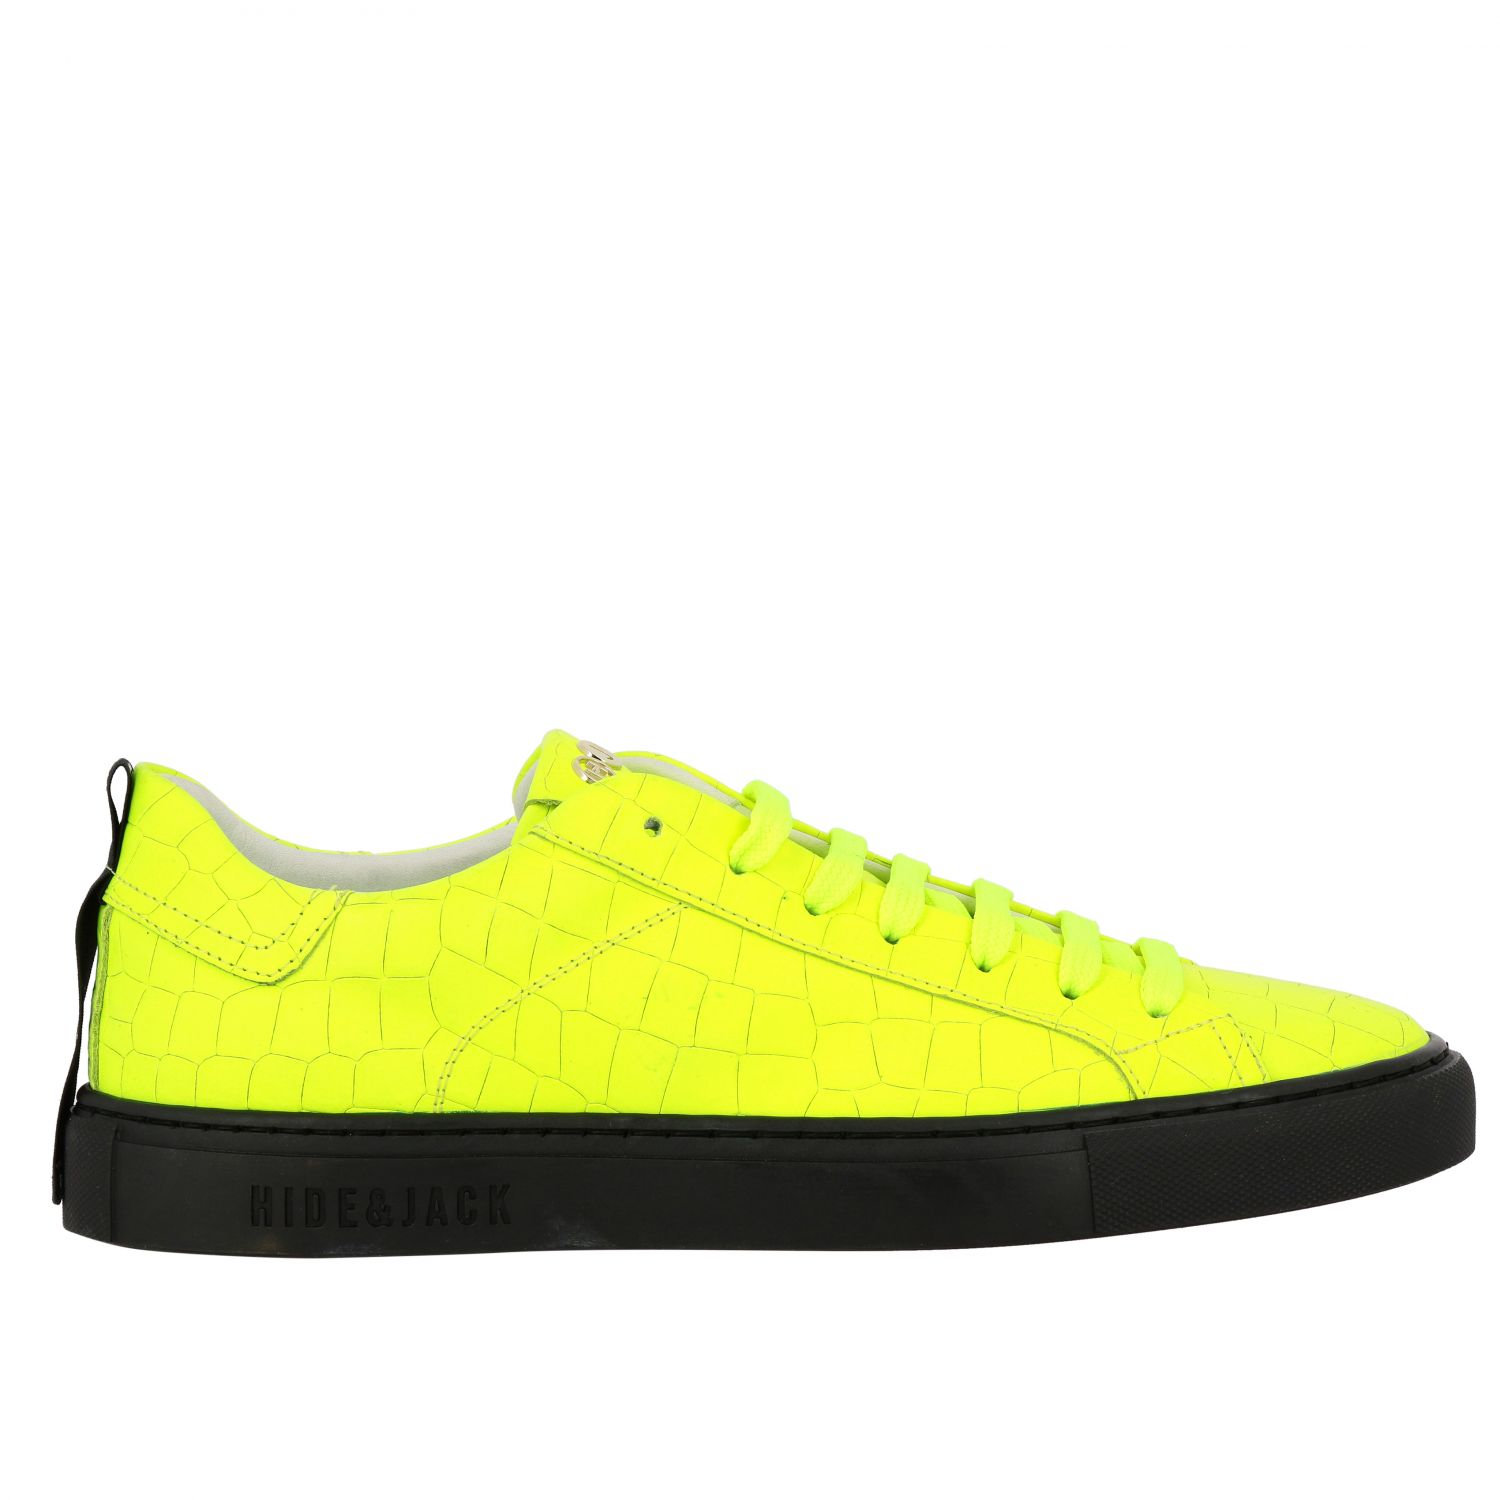 Sneakers pelle stampa cocco fluo giallo 1